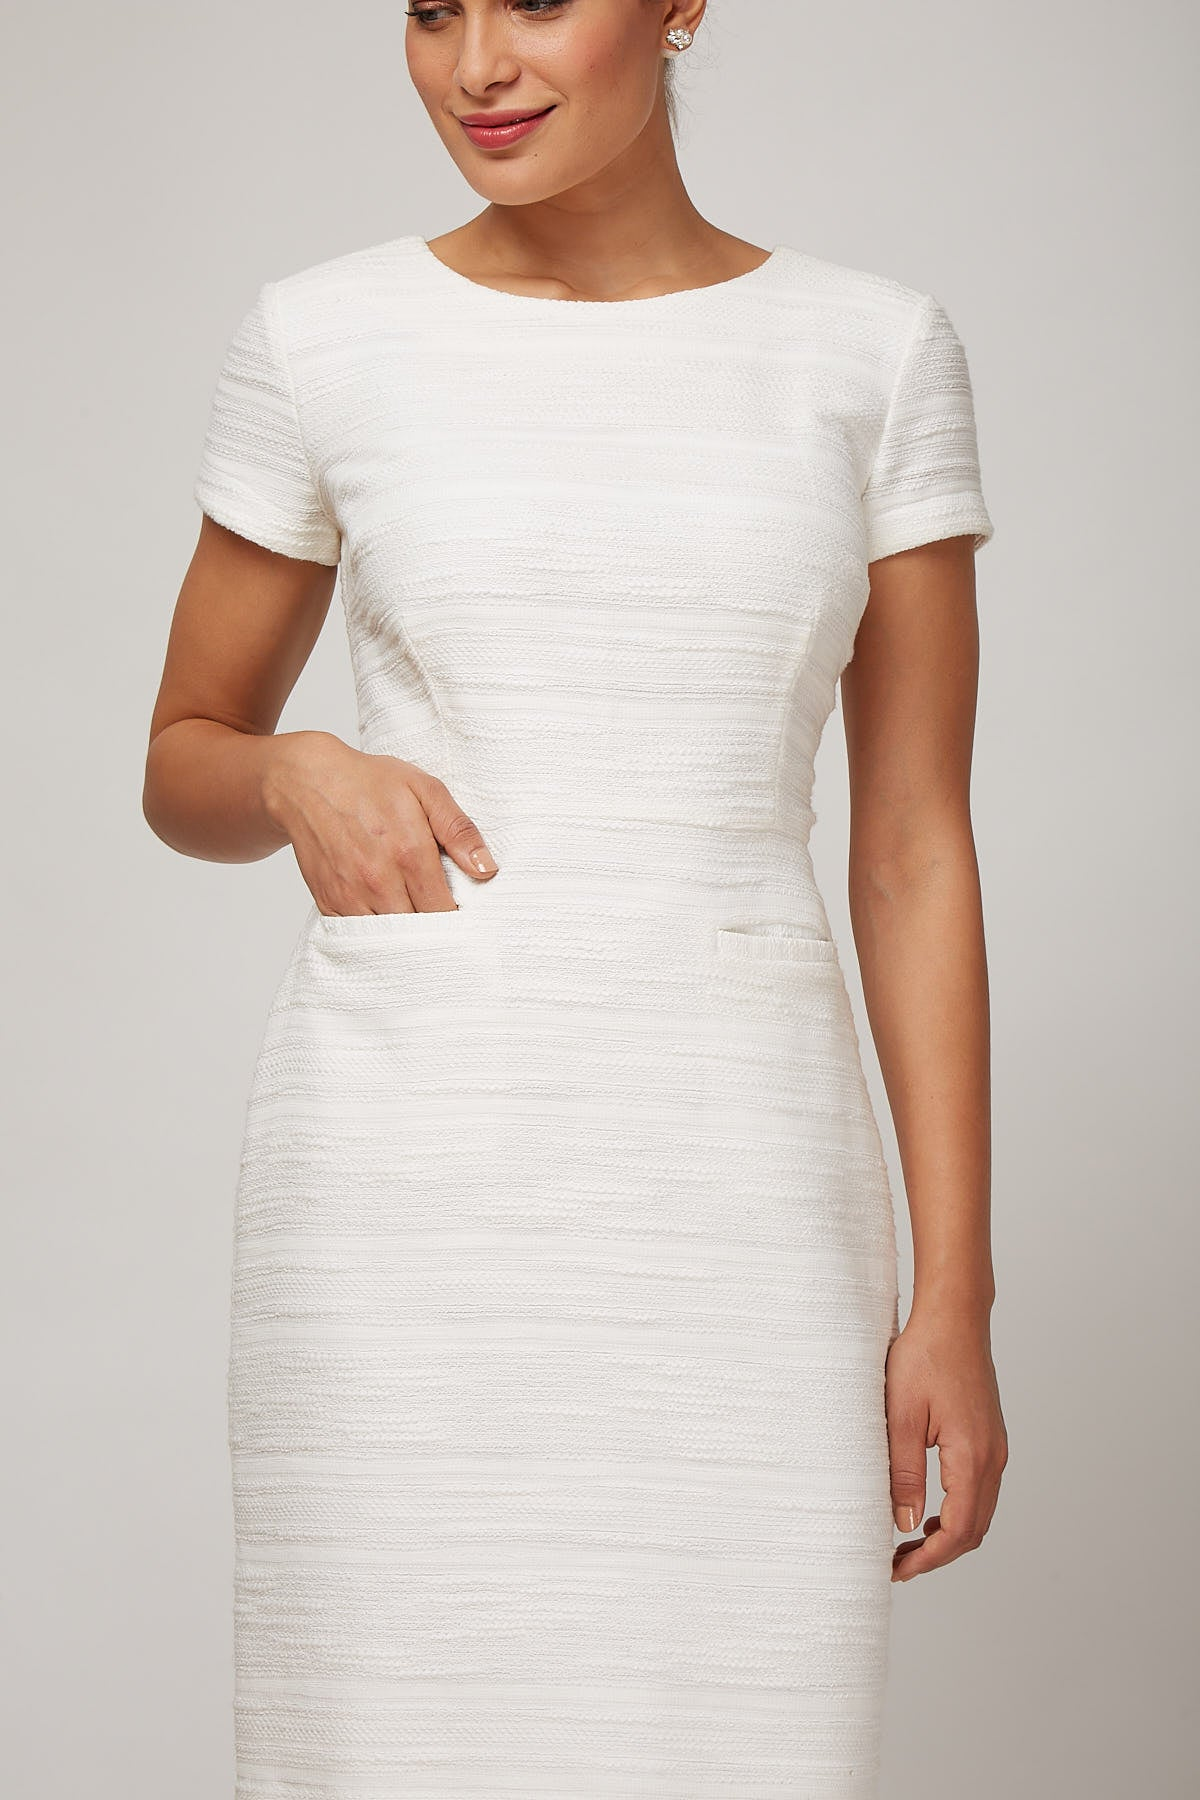 Women's Dinah Dress in Ivory Boucle | Nora Gardner - Pocket